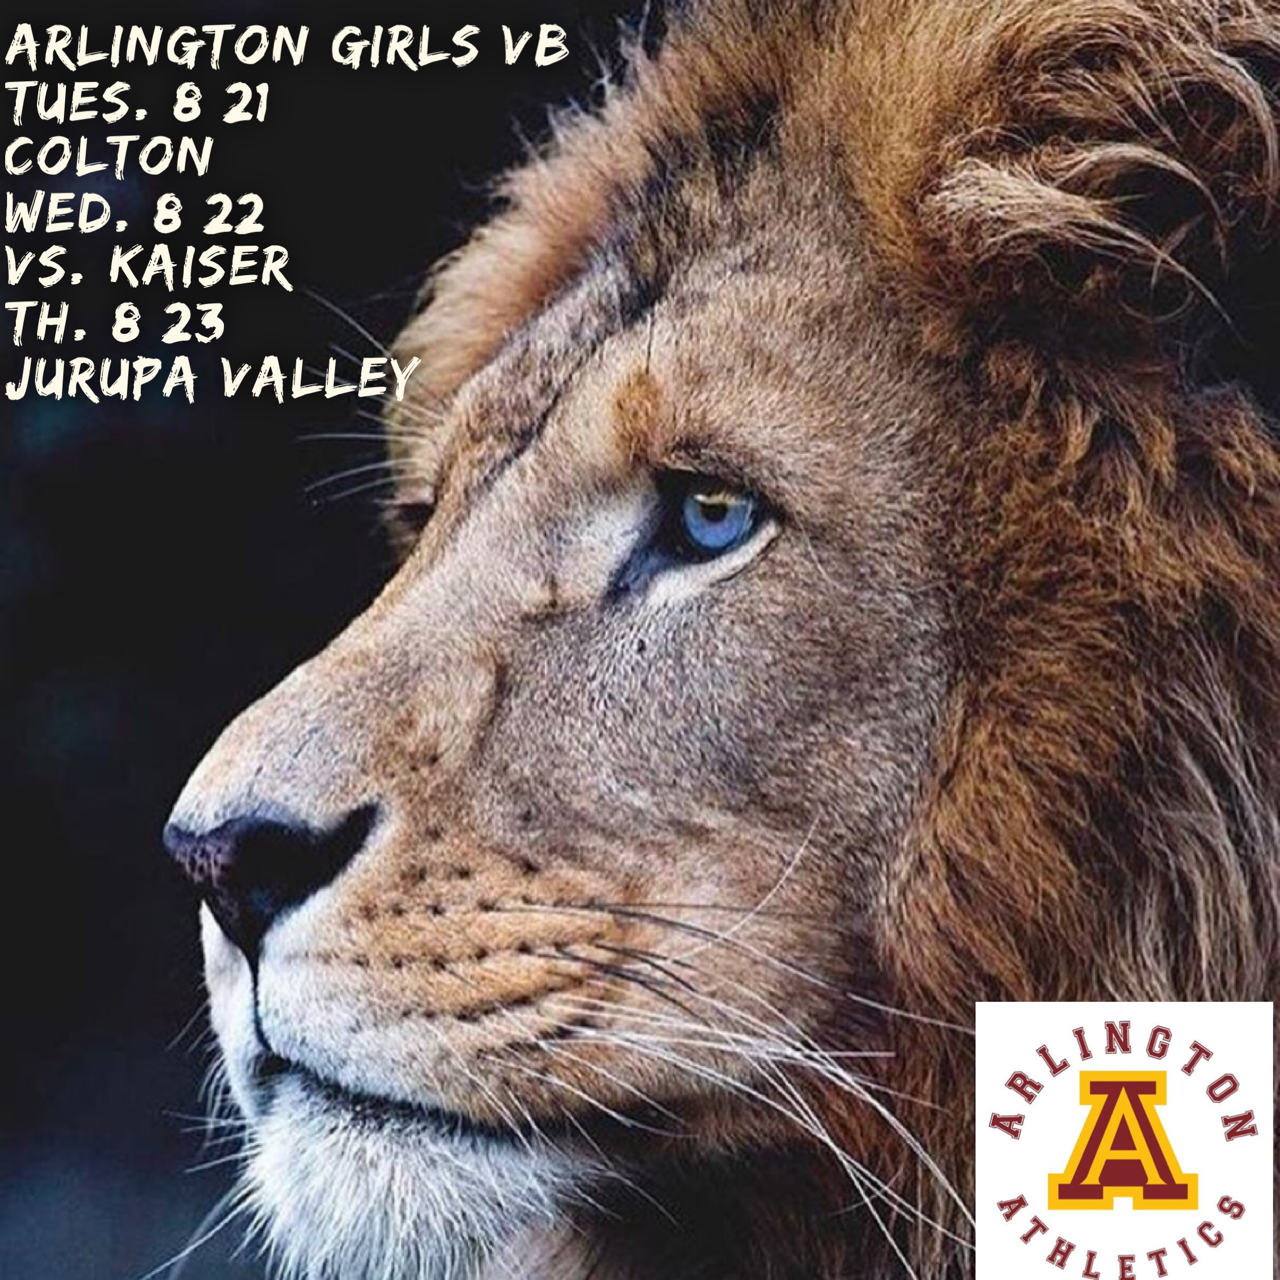 Tuesday, 8/21: Arlington Girls' Volleyball at Colton H.S. – 3:15 p.m.